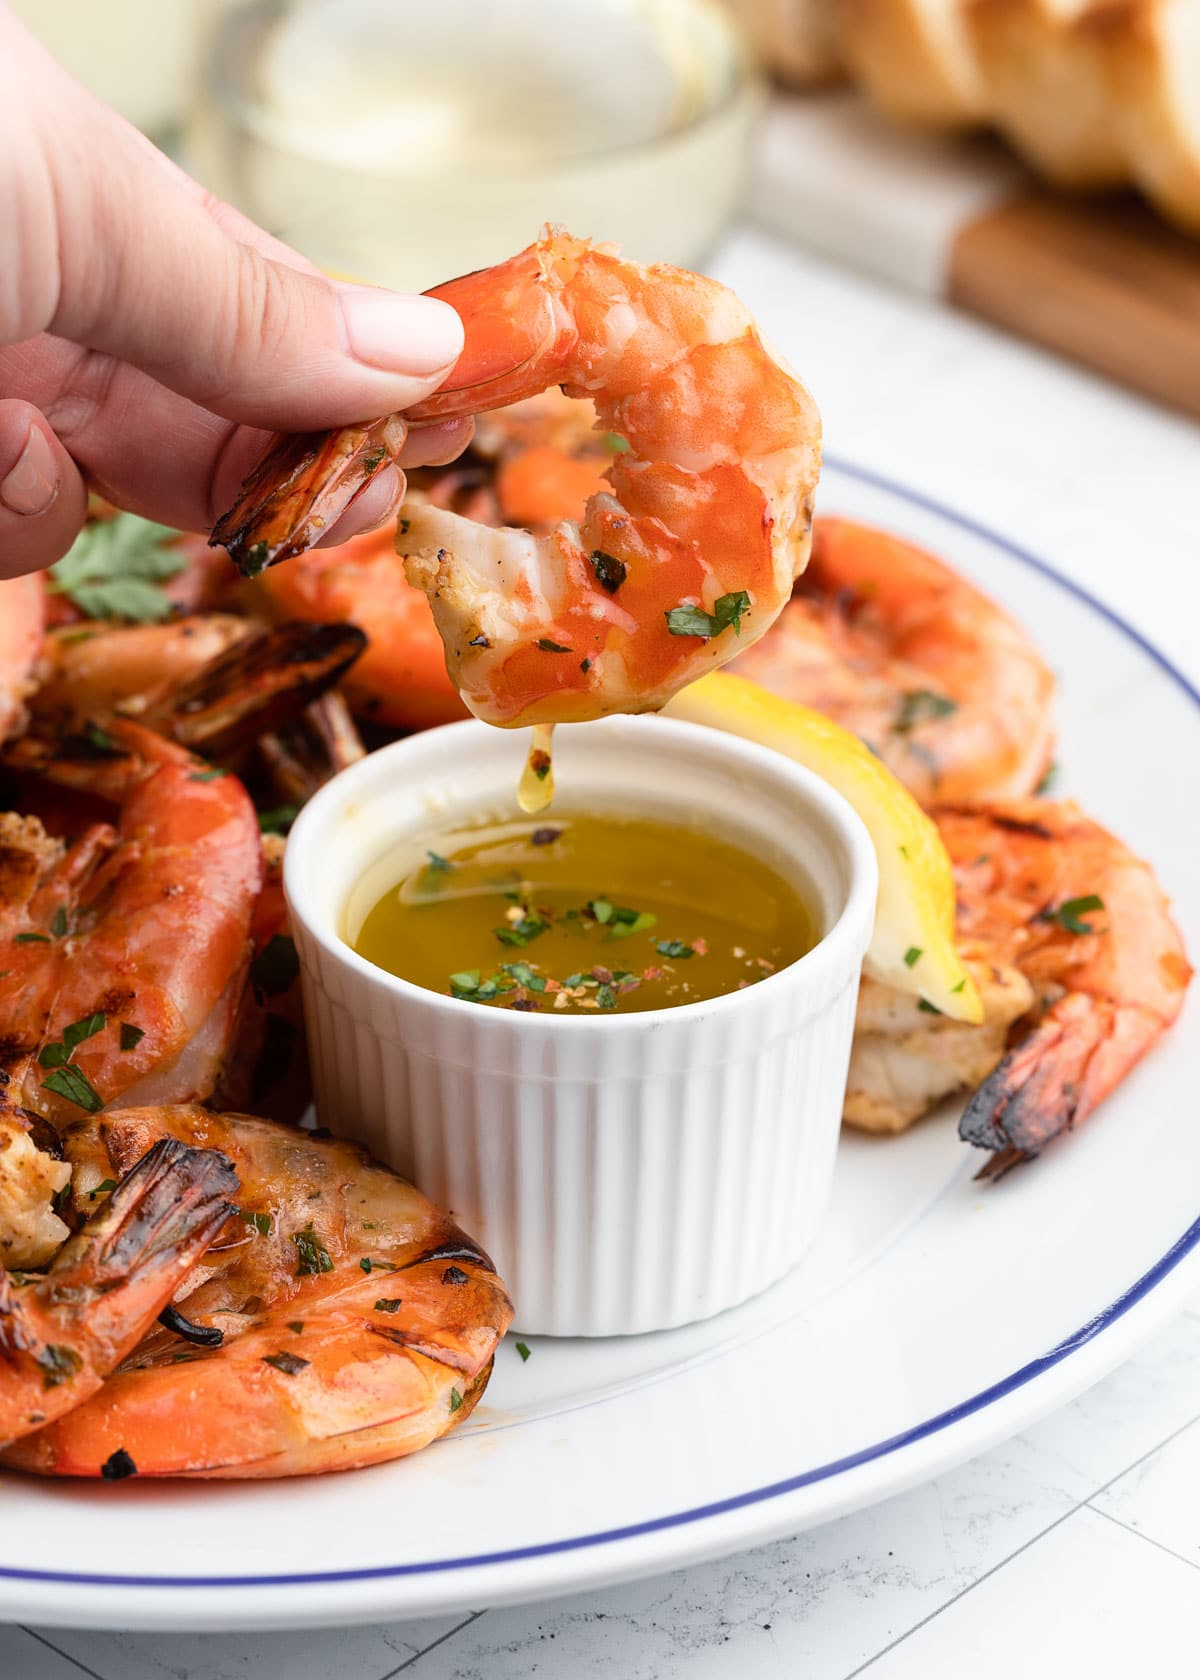 shelled grilled shrimp being dipped into a bowl of warm lemon garlic butter